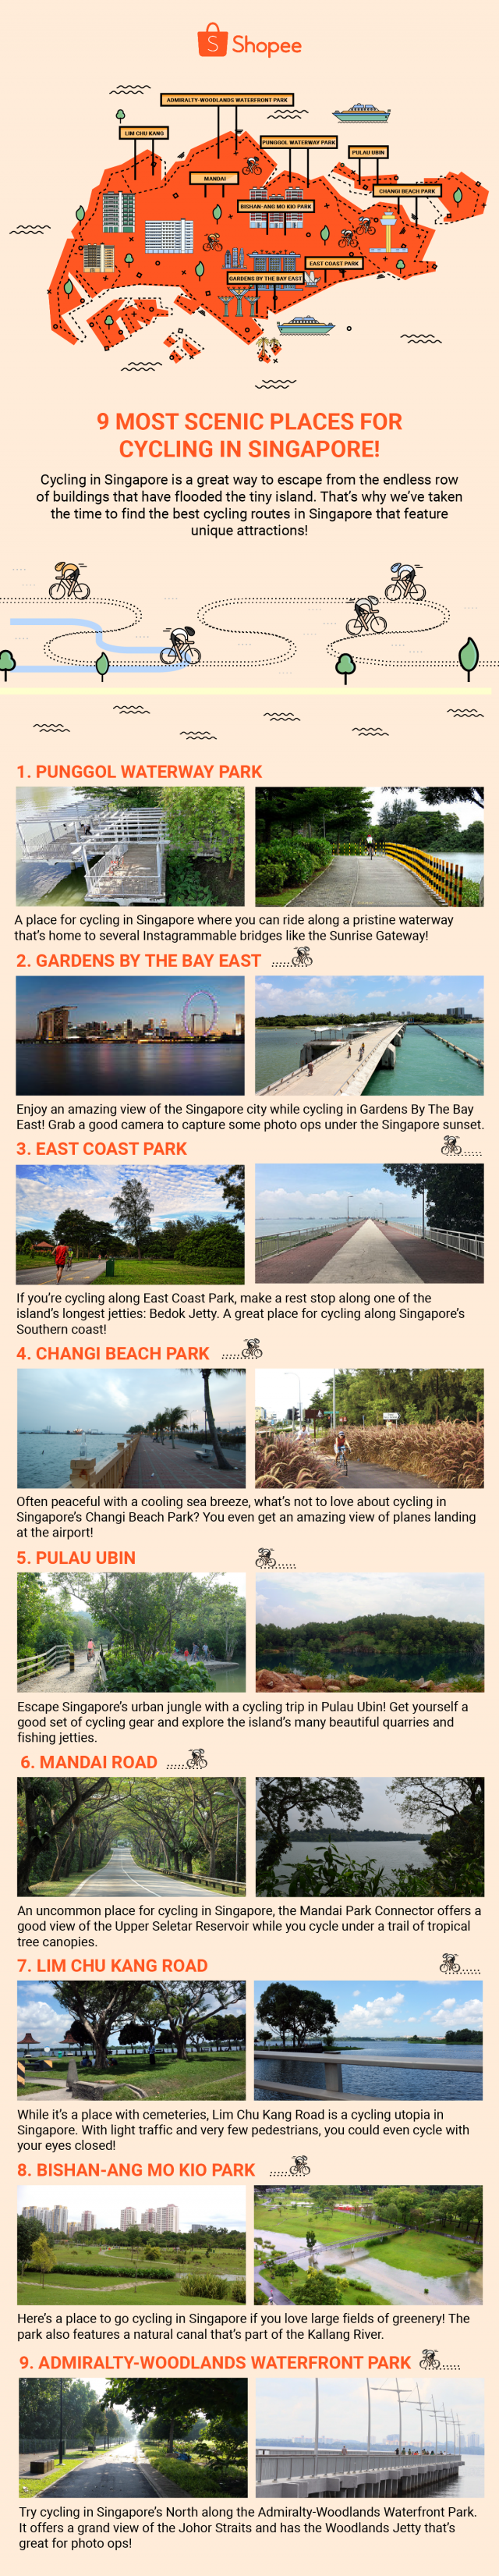 Best Scenic Places Cycling Singapore Bicycle Park Trail Outdoor Activity